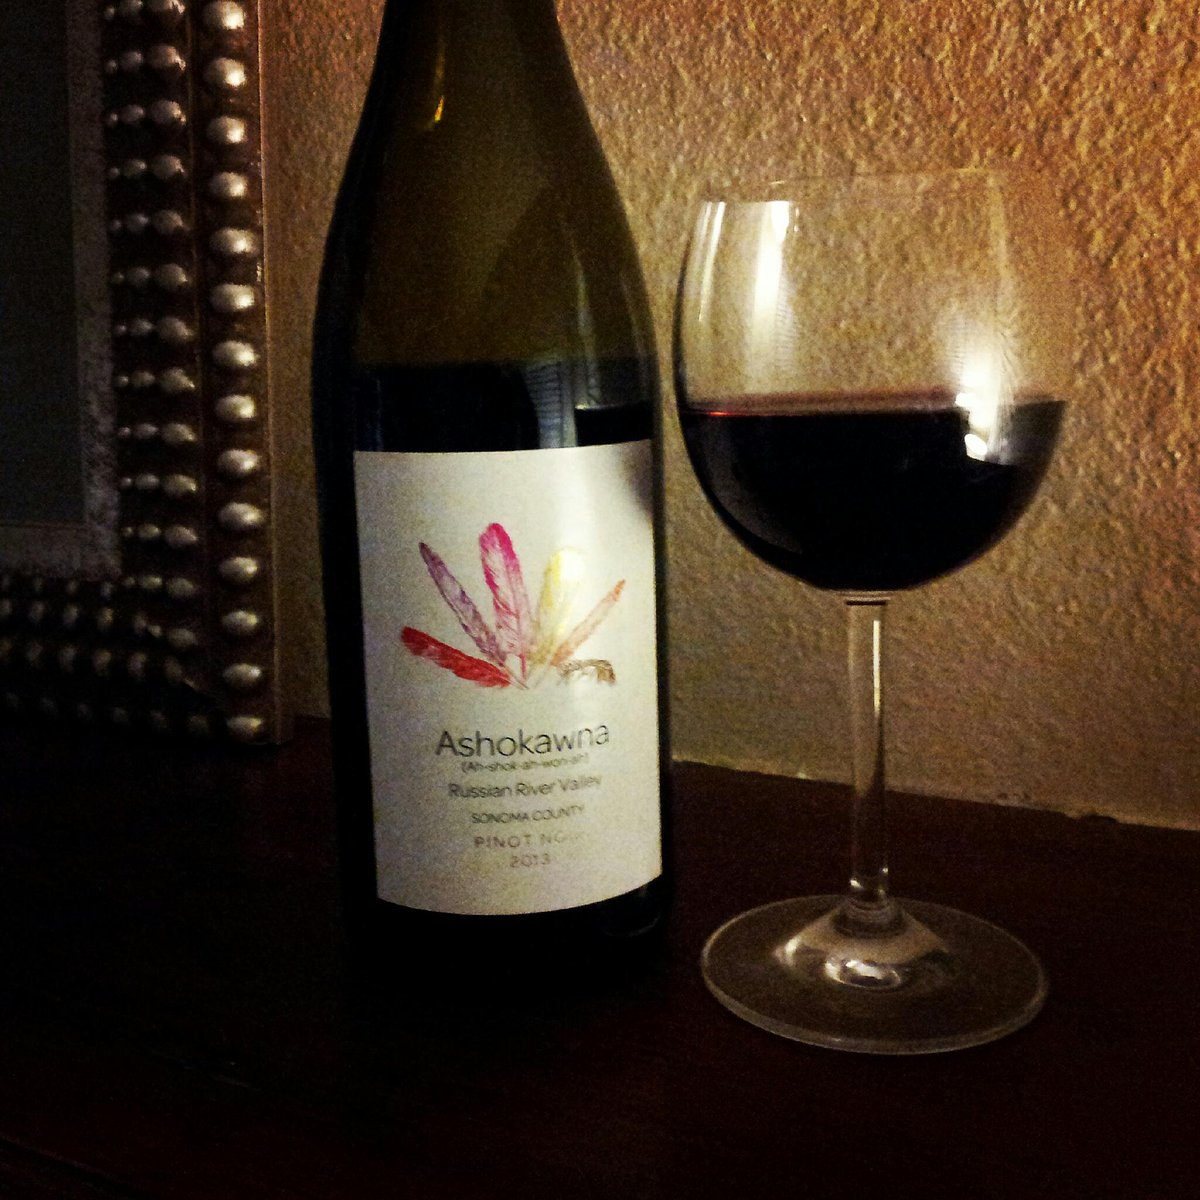 My review of #Ashokawna #pinotnoir #RussianRiverValley '13 wine.  http://t.co/HsgC2ZwCwM #BevChat http://t.co/NT5Dlm41GL